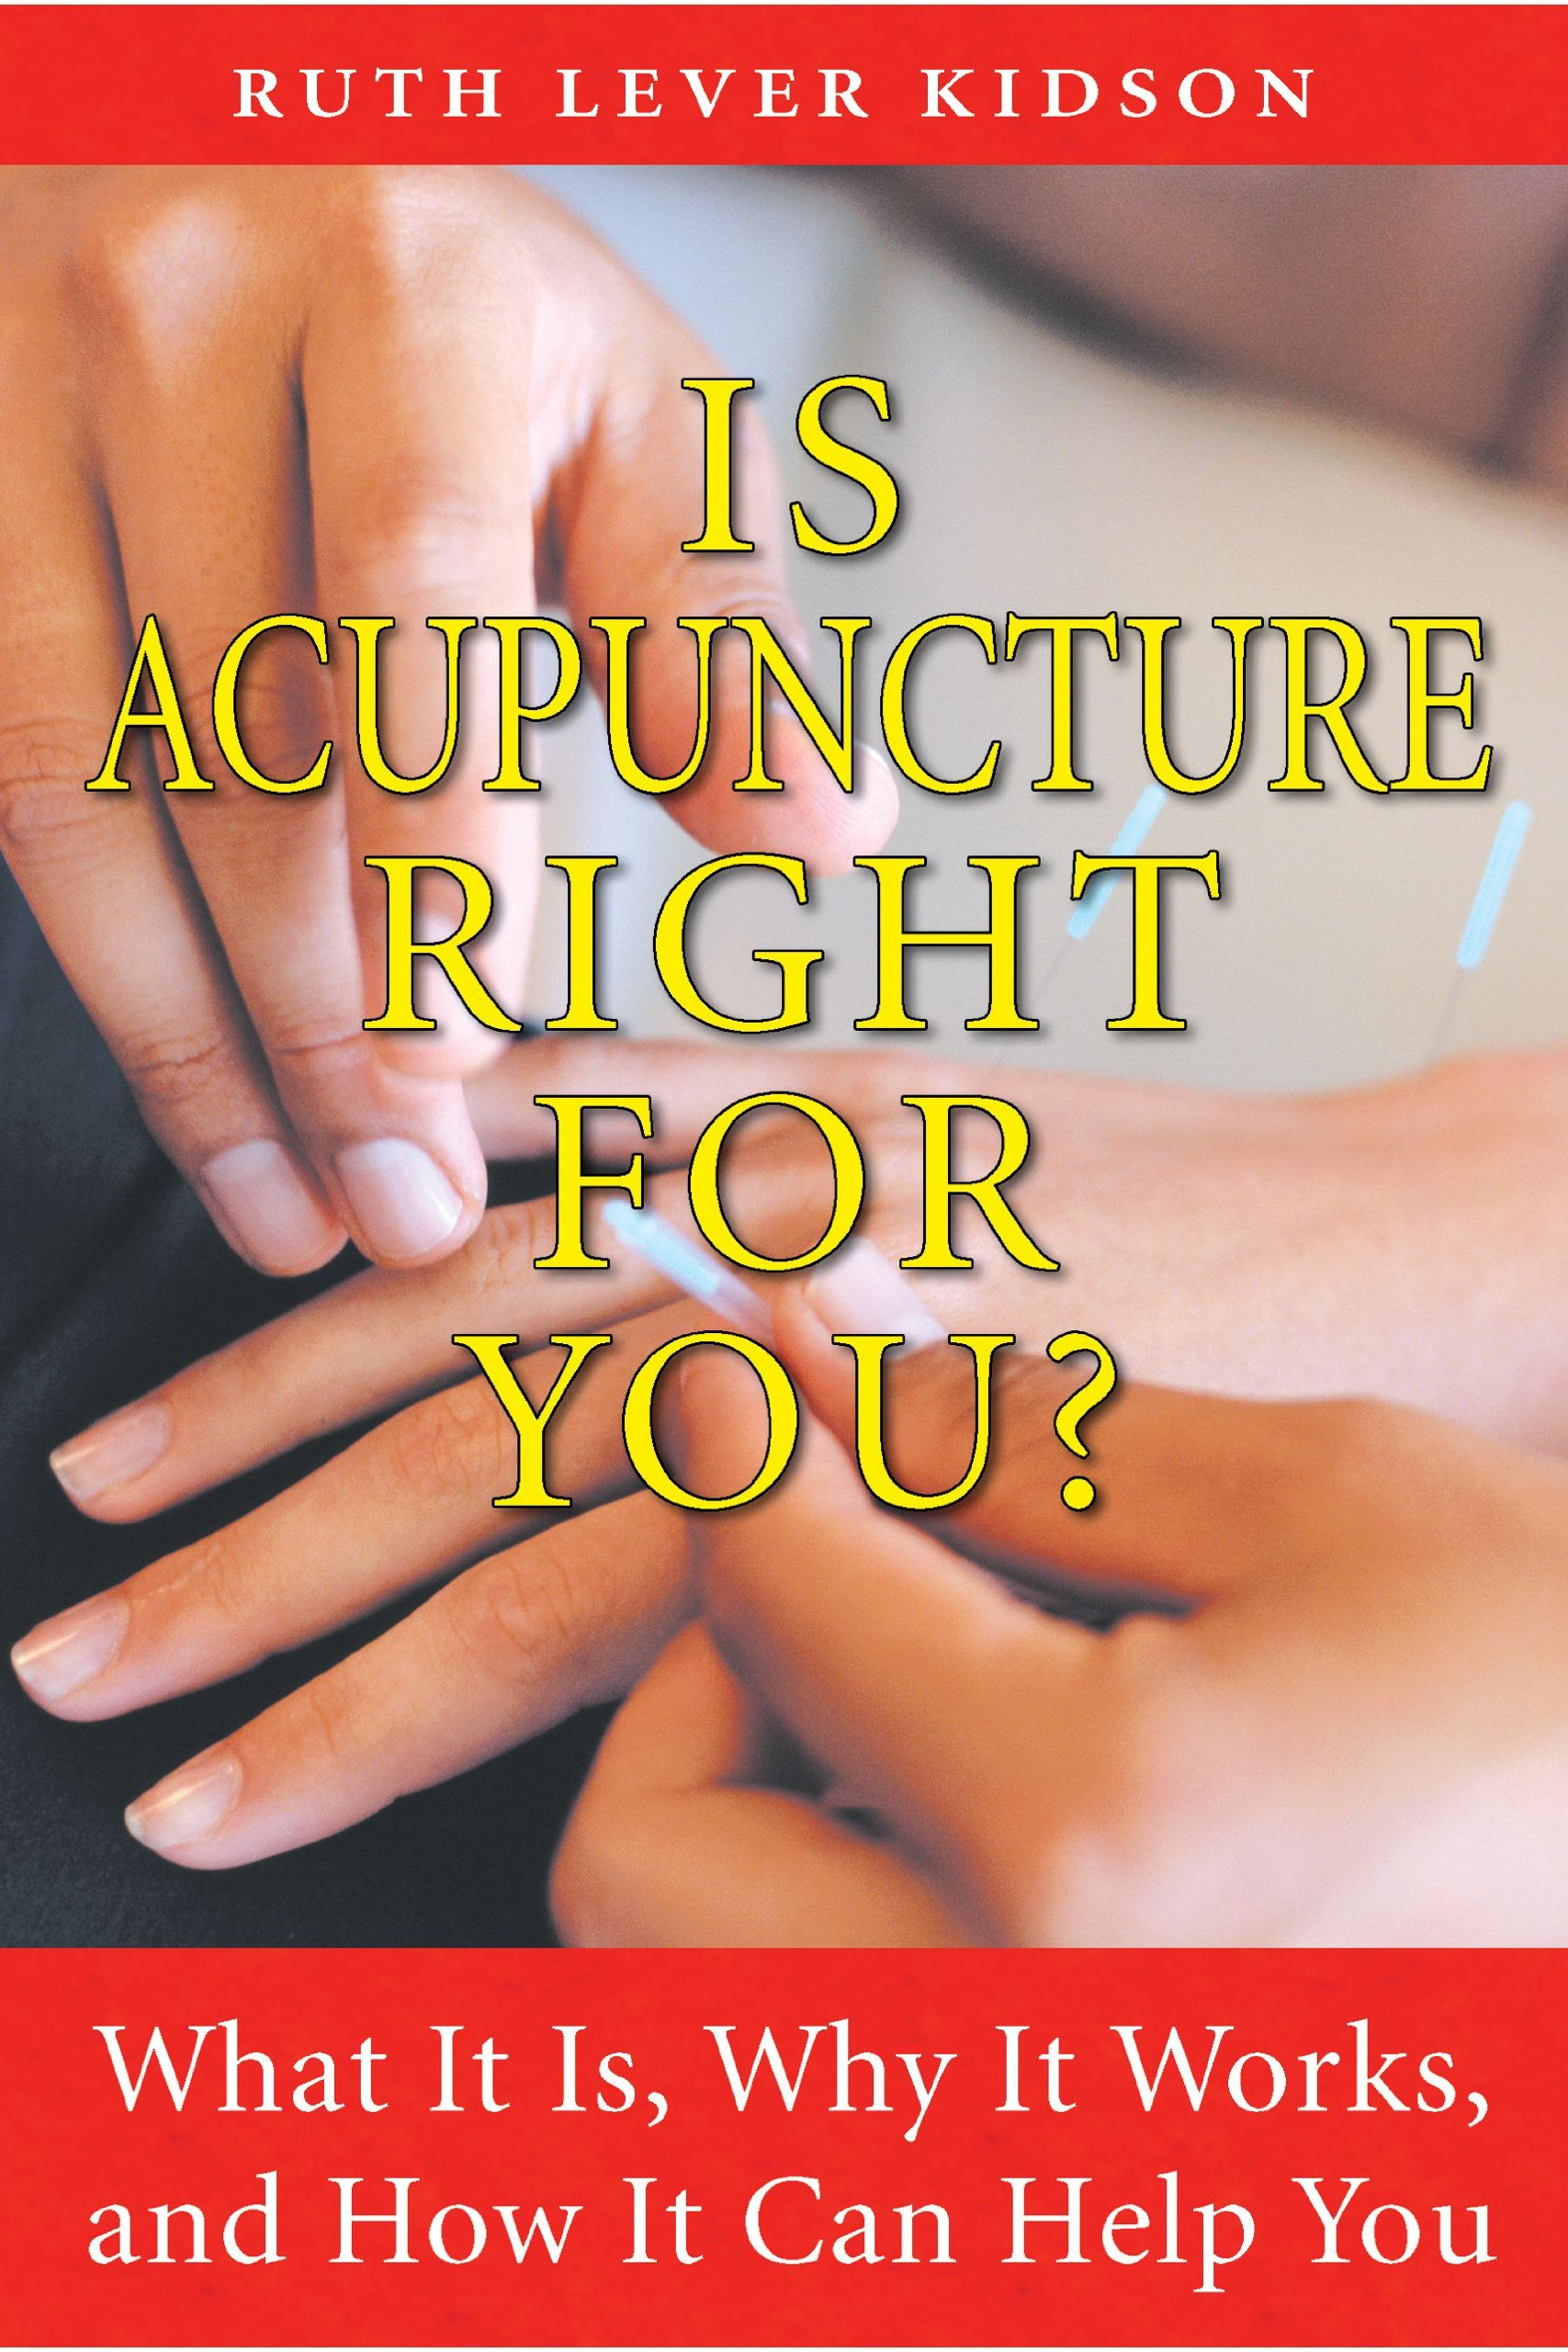 Is Acupuncture Right for You?: What It Is, Why It Works, and How It Can Help You pdf